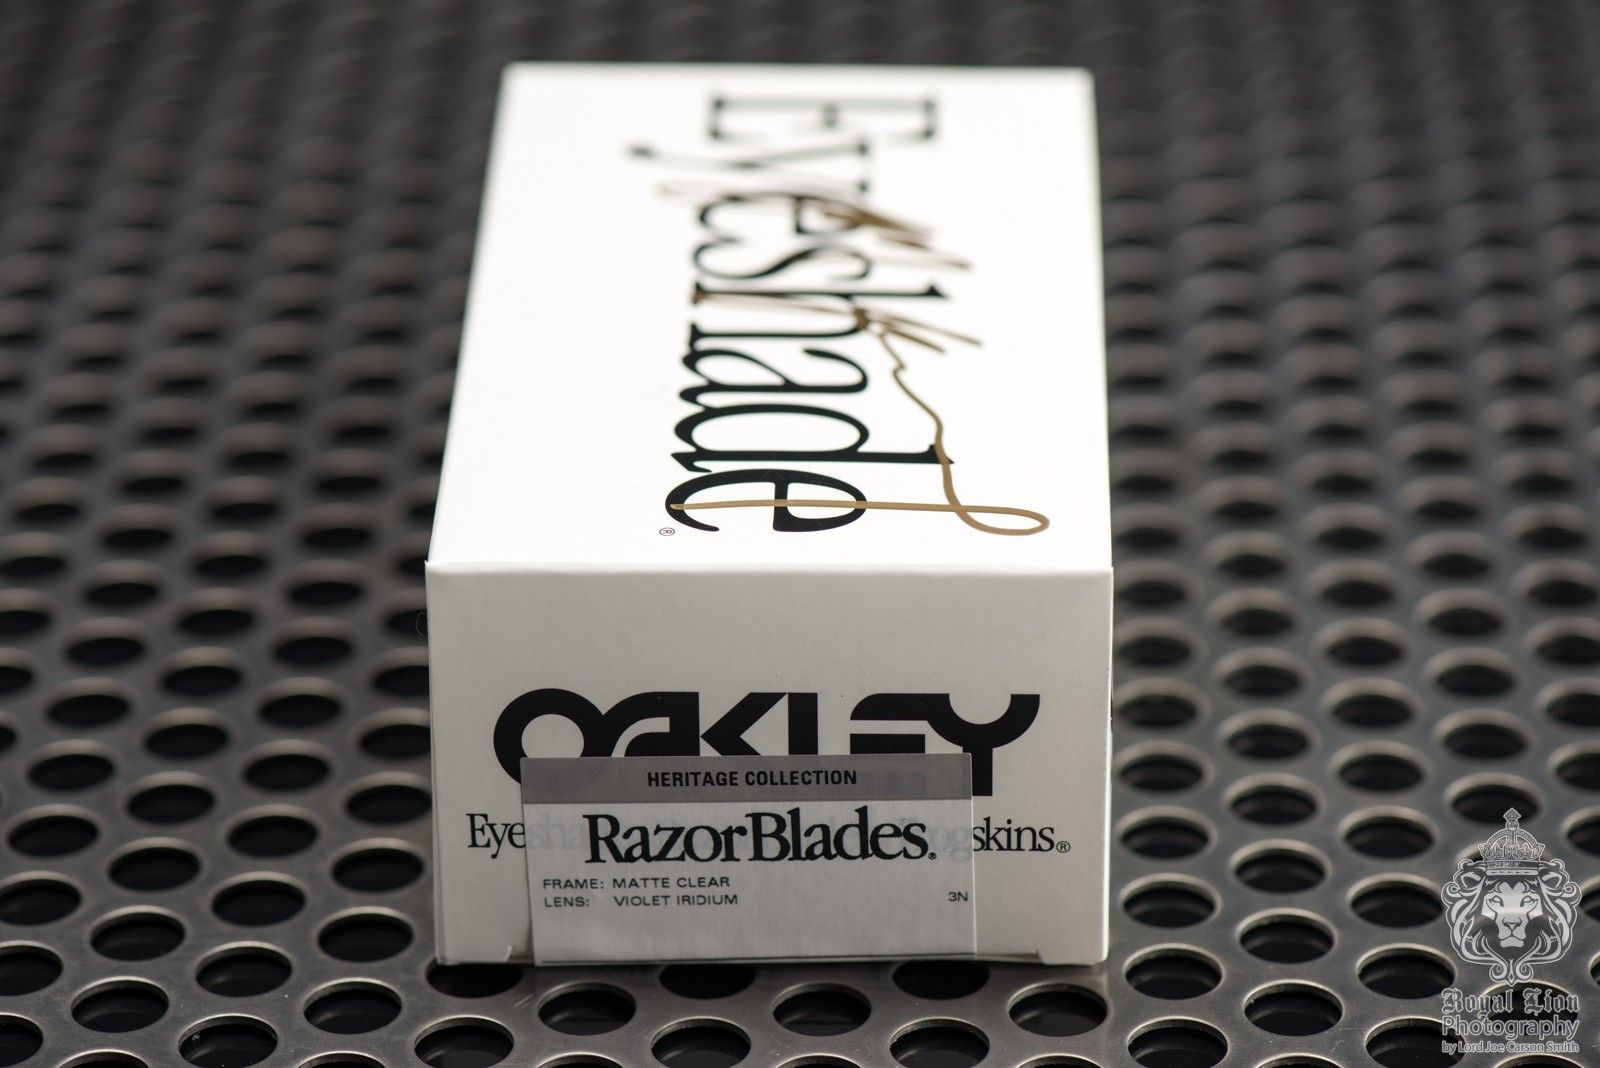 1 of 3 Signed Oakley Heritage Razorblades by Jim Jannard - Matte Clear with Violet Iridium - ND8_3475.jpg